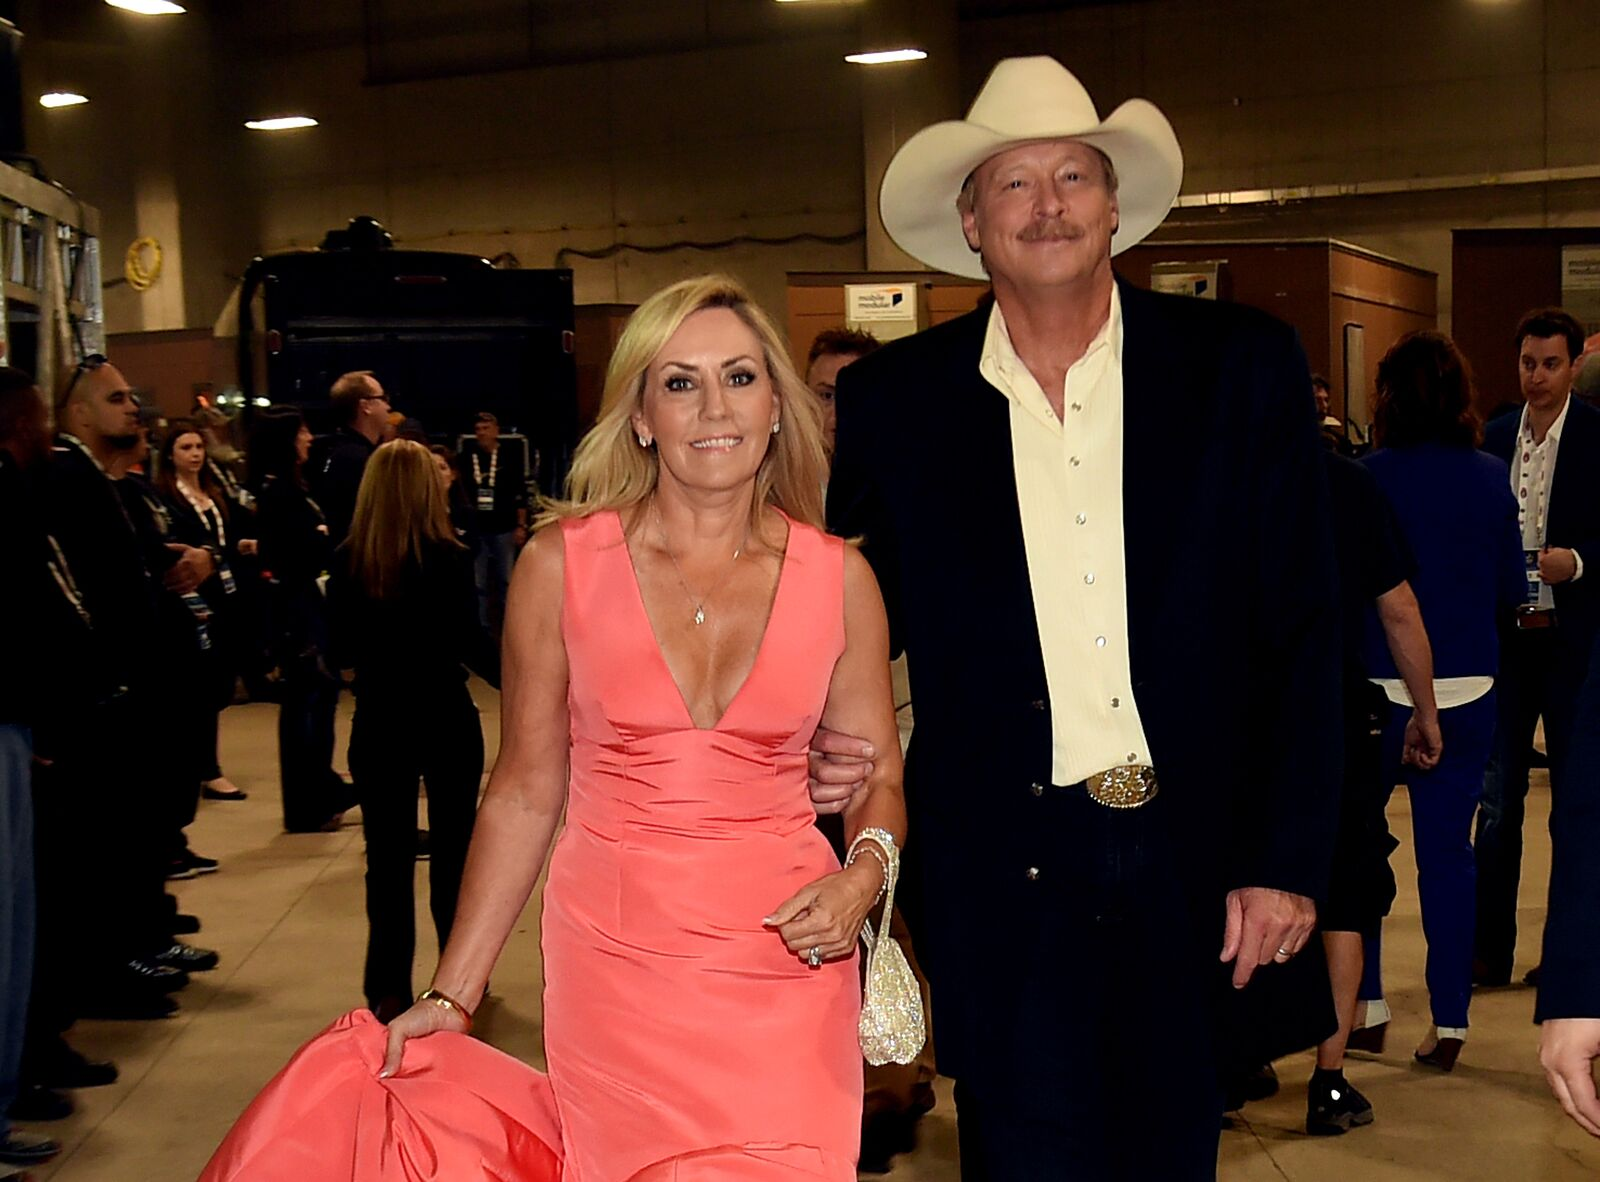 Singer-songwriter Alan Jackson (R) and wife Denise Jackson attend the 50th Academy of Country Music Awards at AT&T Stadium on April 19, 2015 in Arlington, Texas | Photo: Getty Images